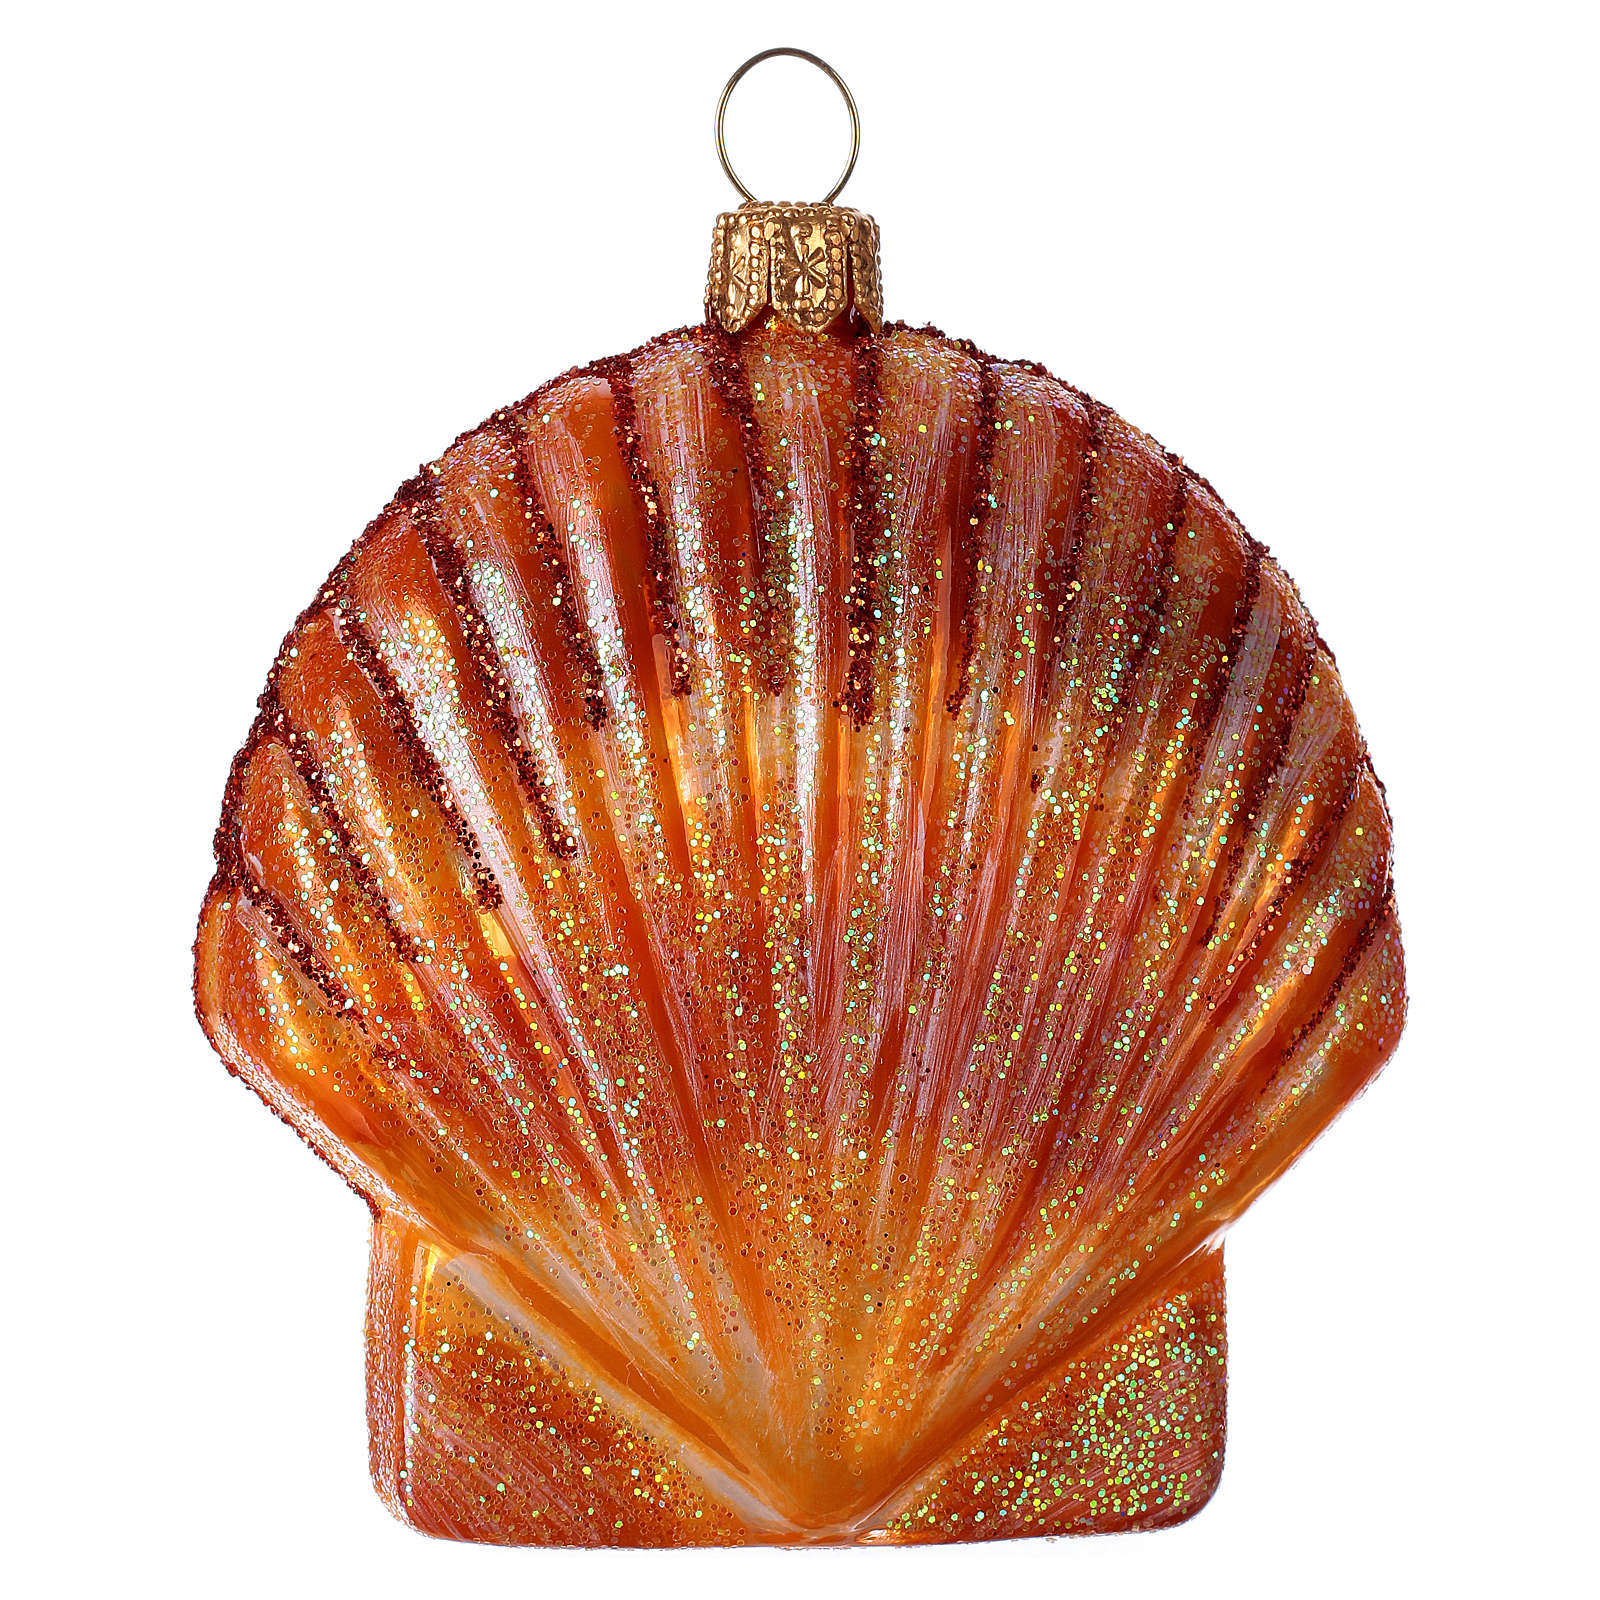 Blown glass Christmas ornament, orange seashell 4